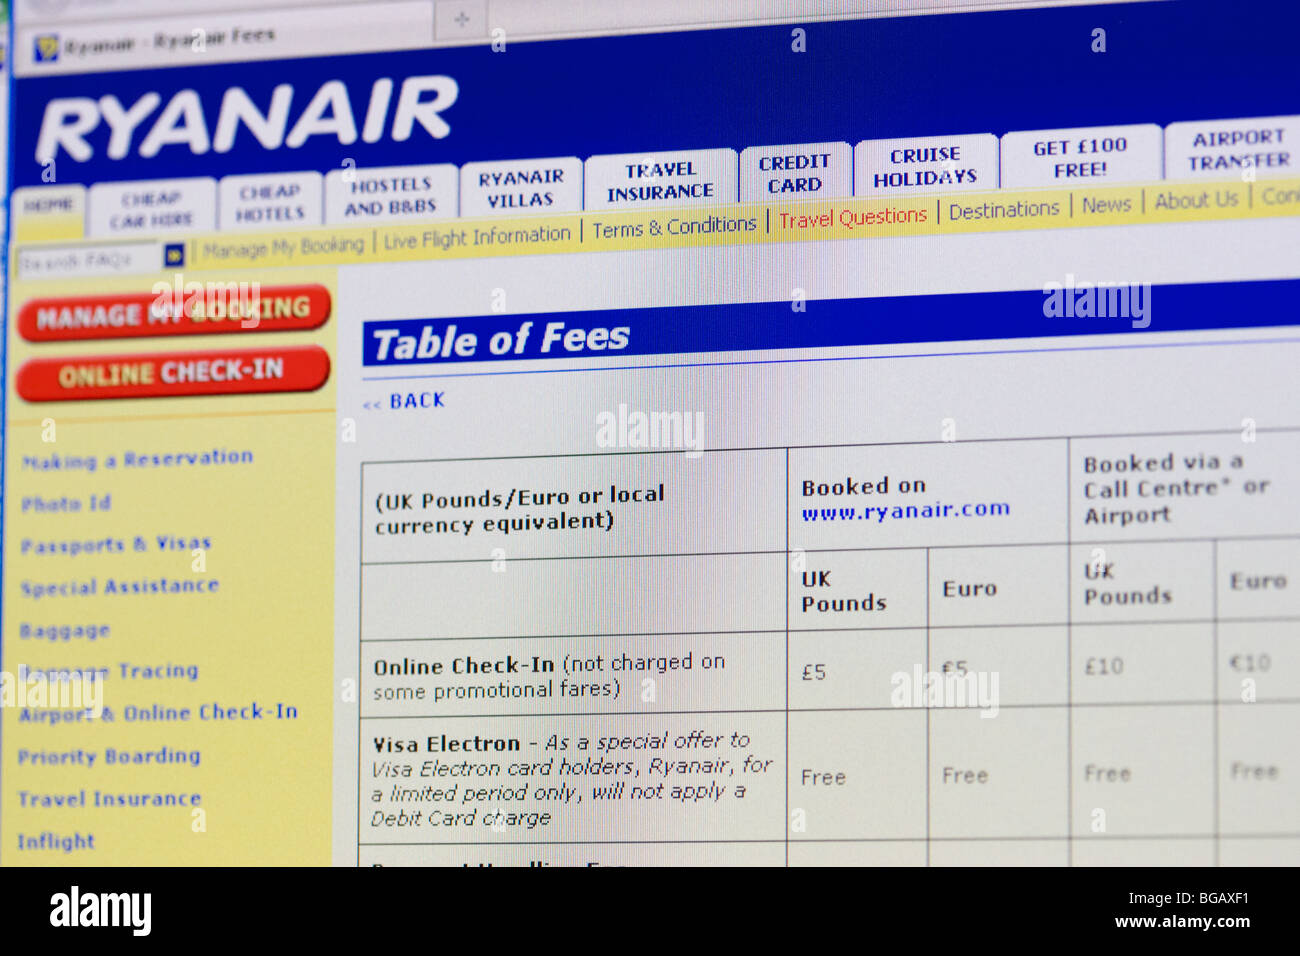 screenshot of table of fees on ryanair website for editorial use only - Stock Image